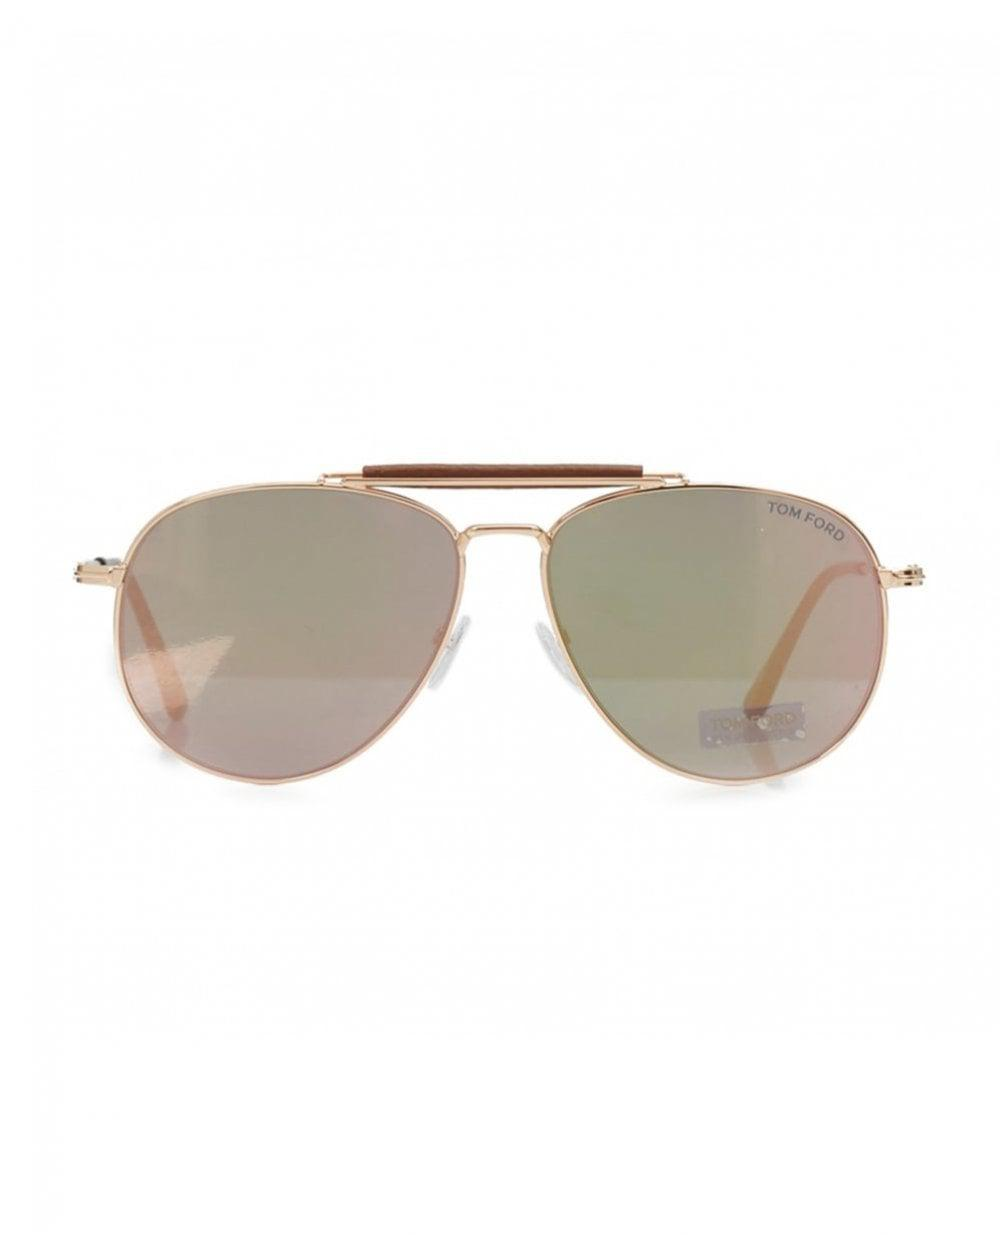 ddef394f5bd Tom Ford Sean Oversized Mirrored Aviators in Metallic for Men - Lyst